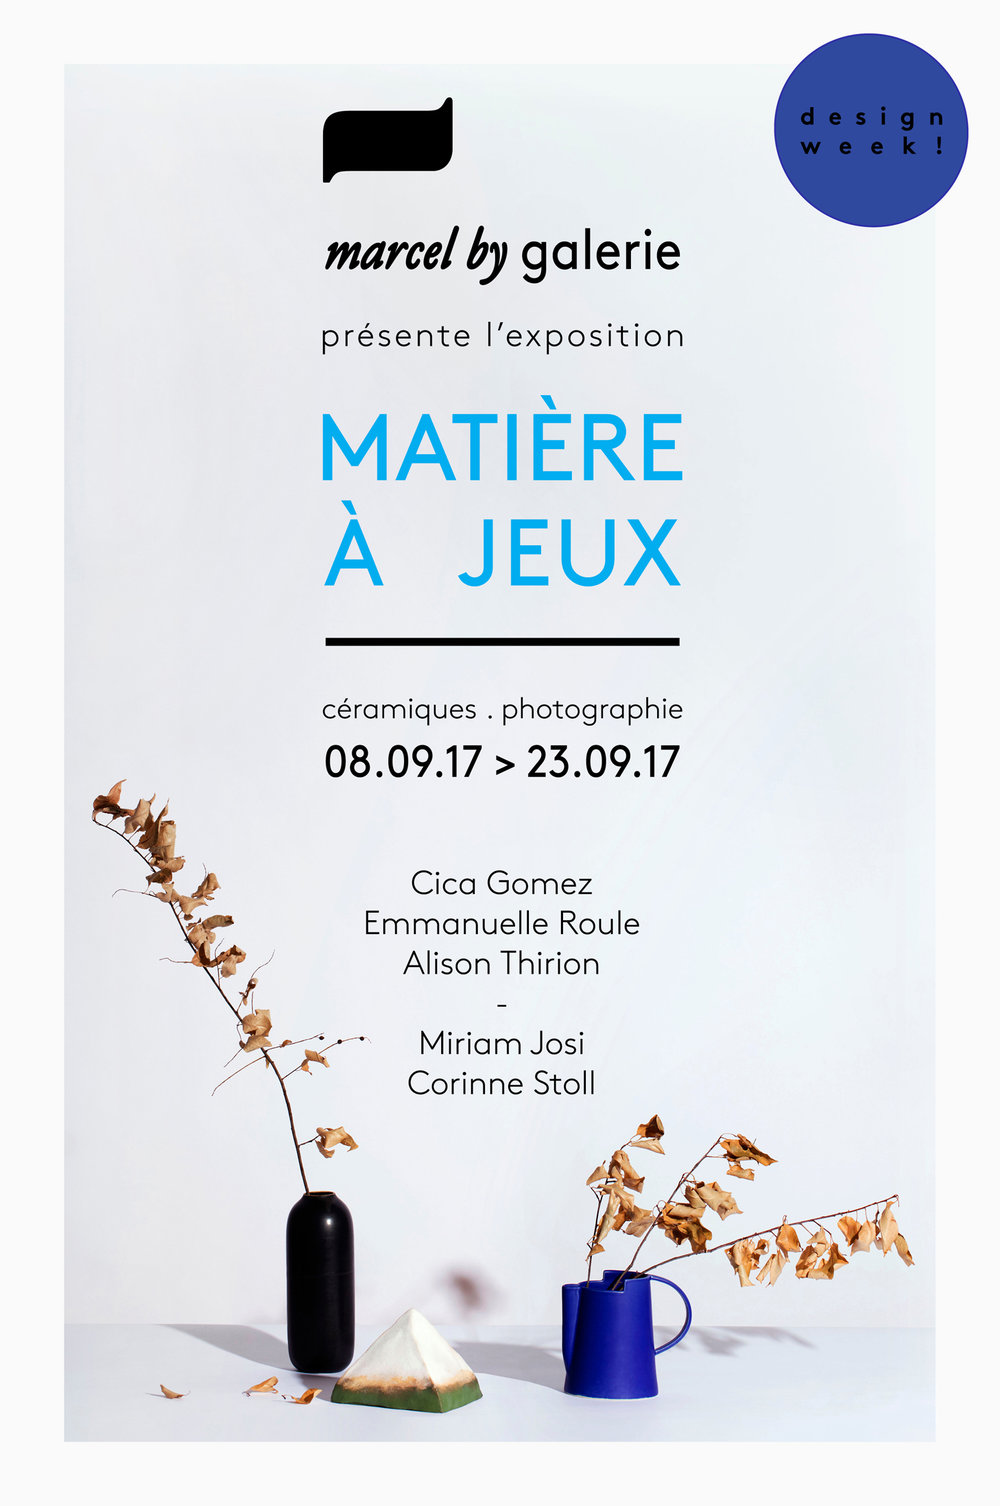 Exposition_MATIERE A JEUX_flyers_2.jpg